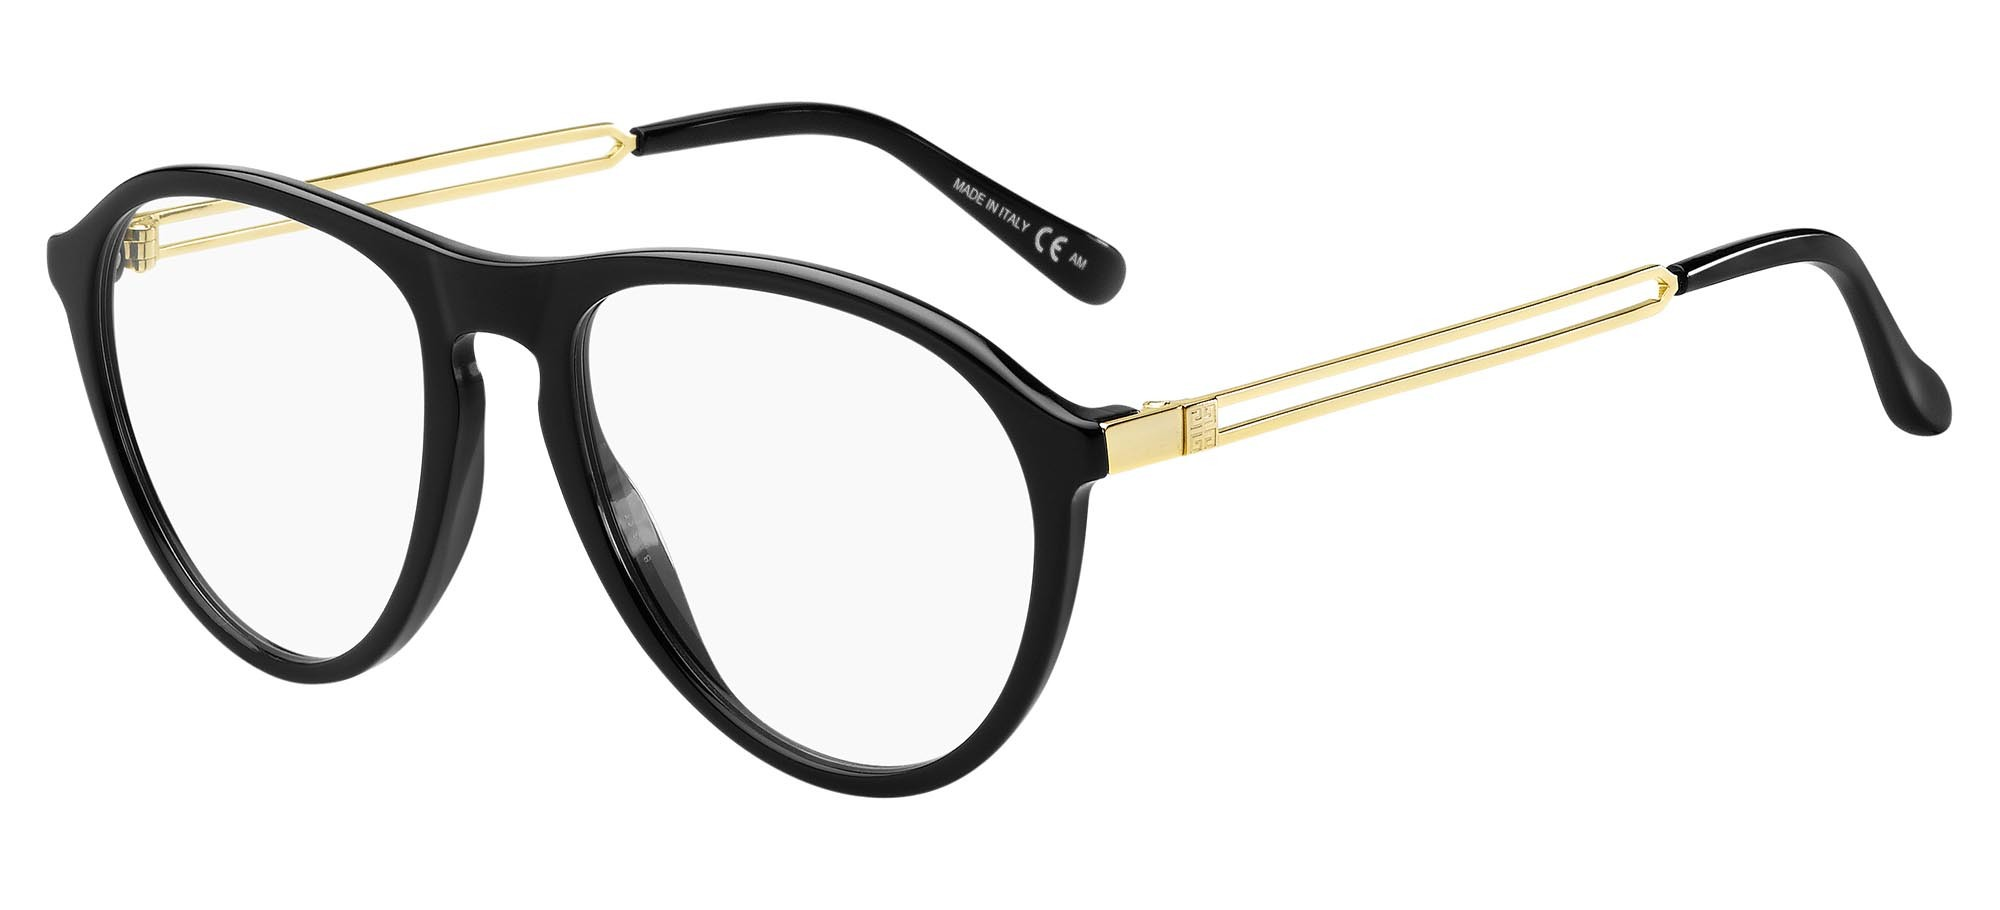 Givenchy eyeglasses GIVENCHY DOUBLE WIRE GV 0097